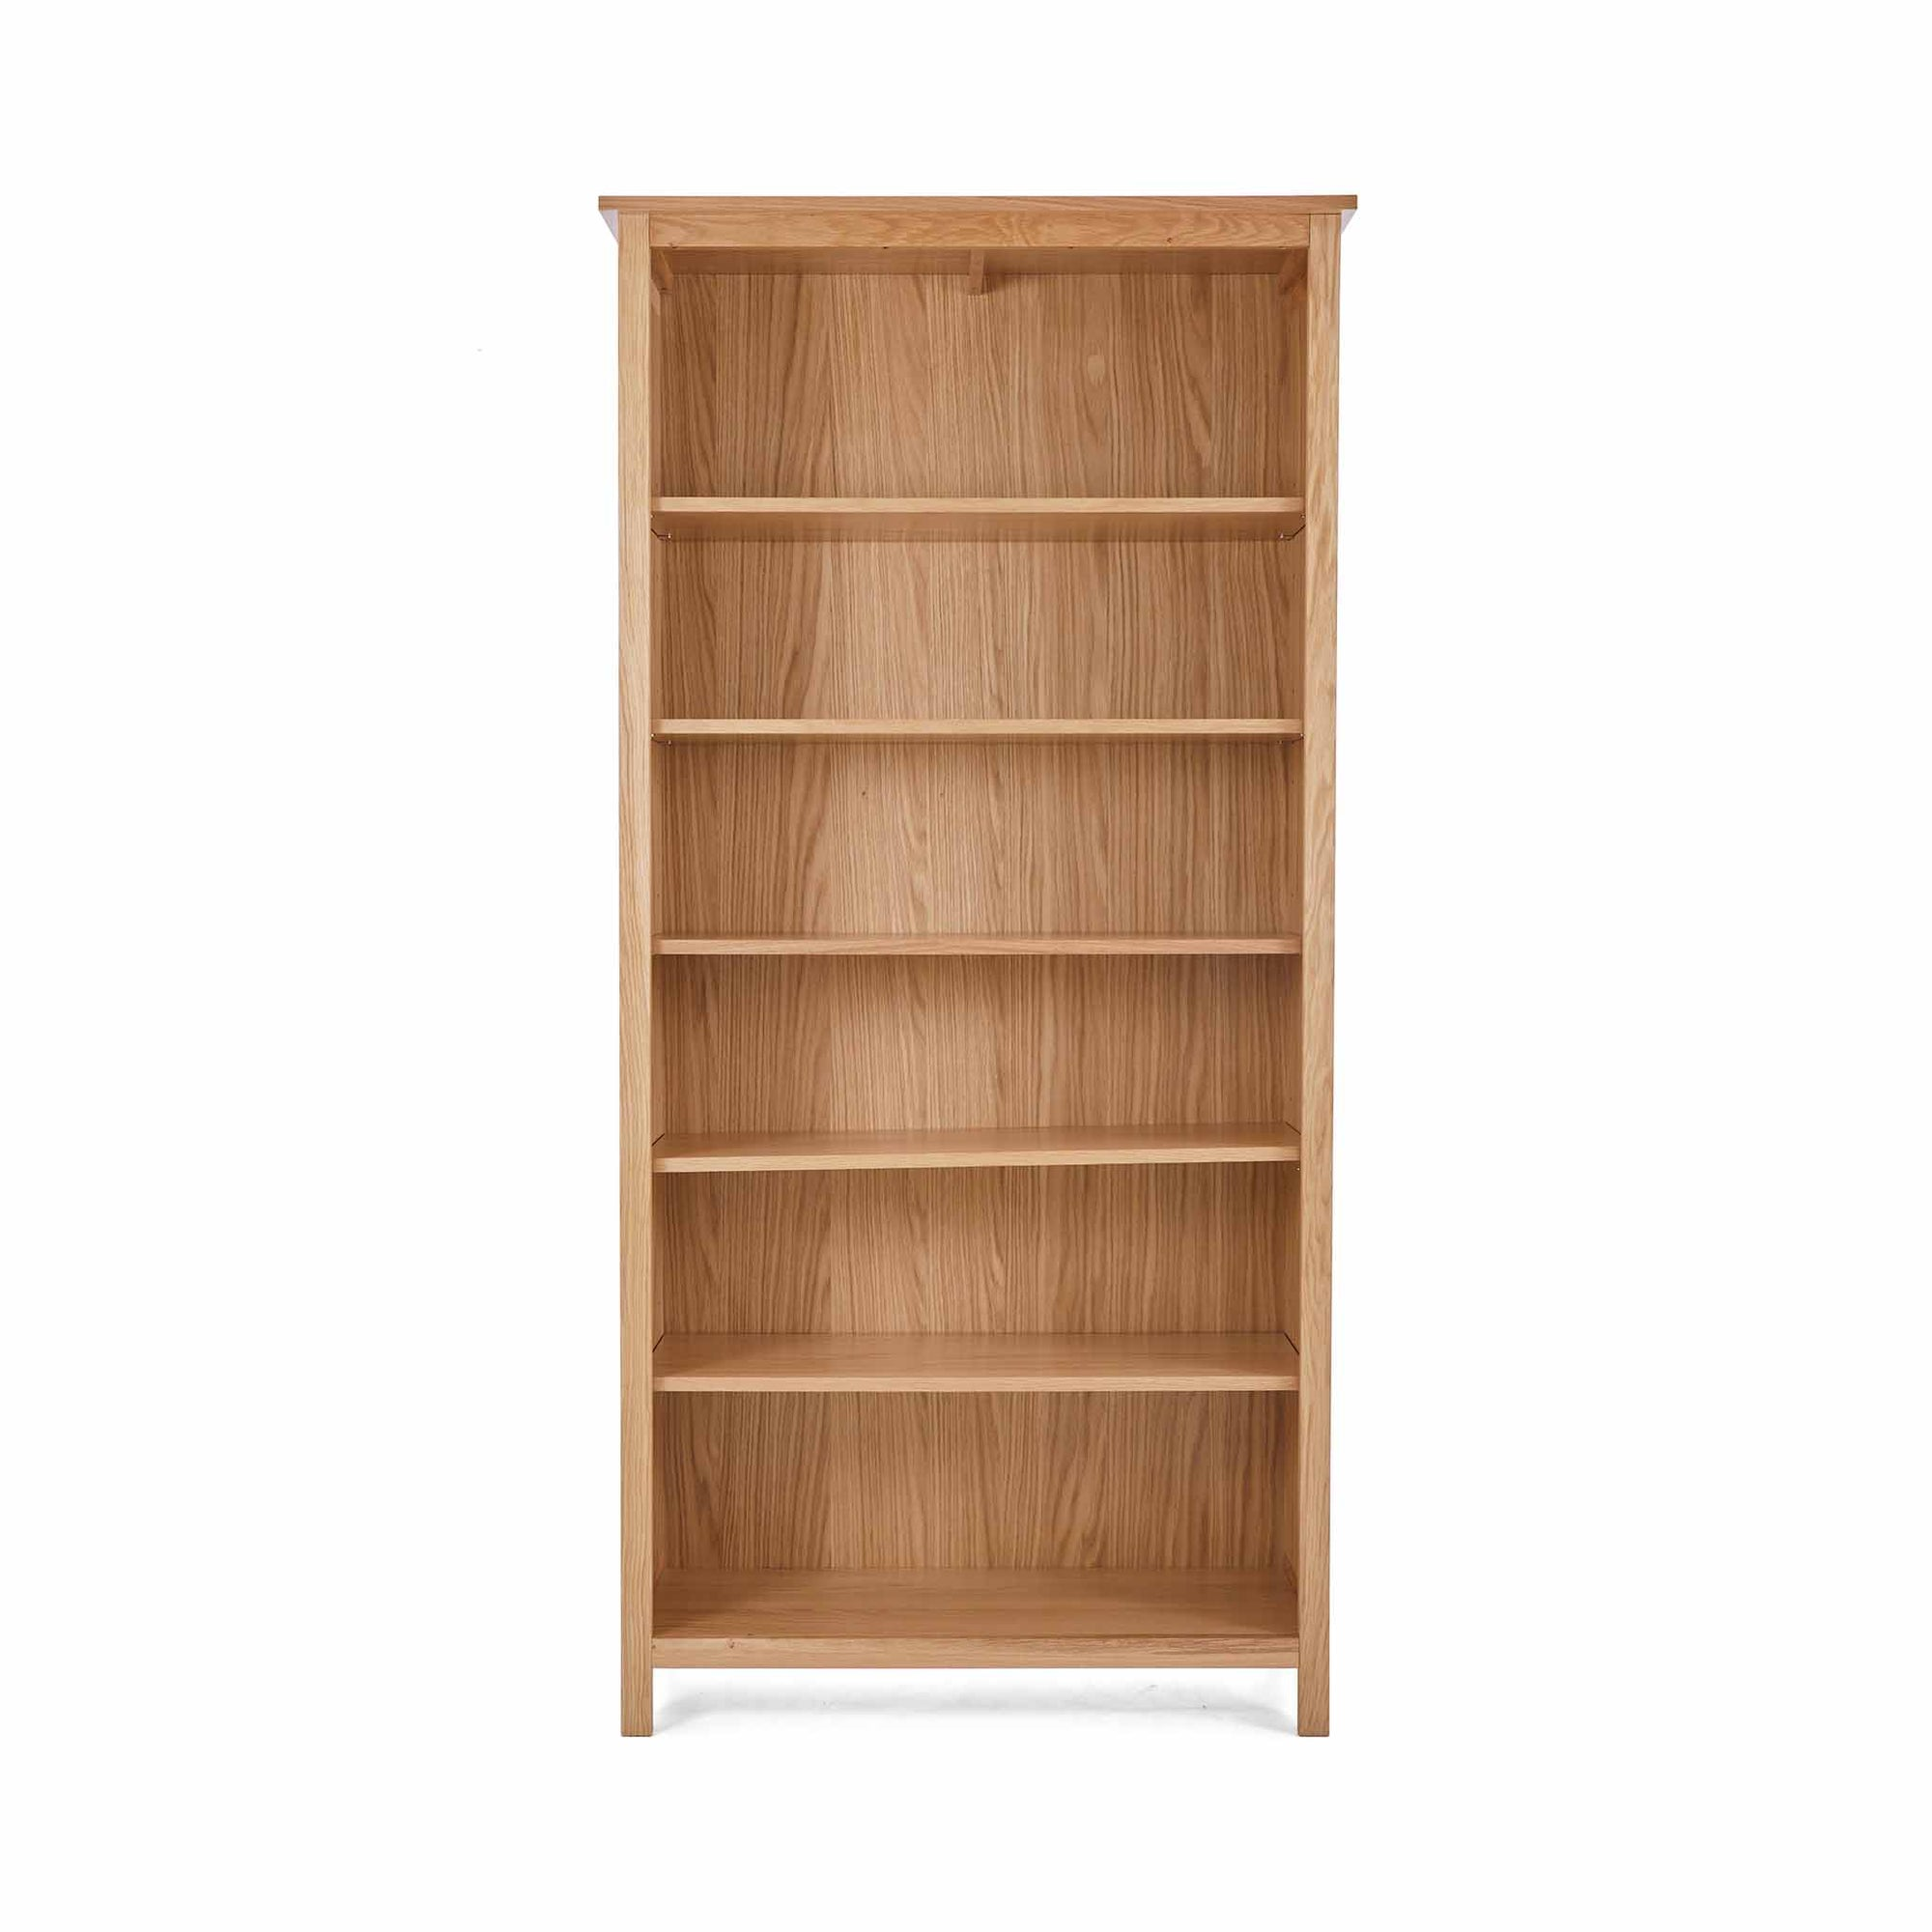 Front view of the Falmouth Oak Large Bookcase by Roseland Furniture